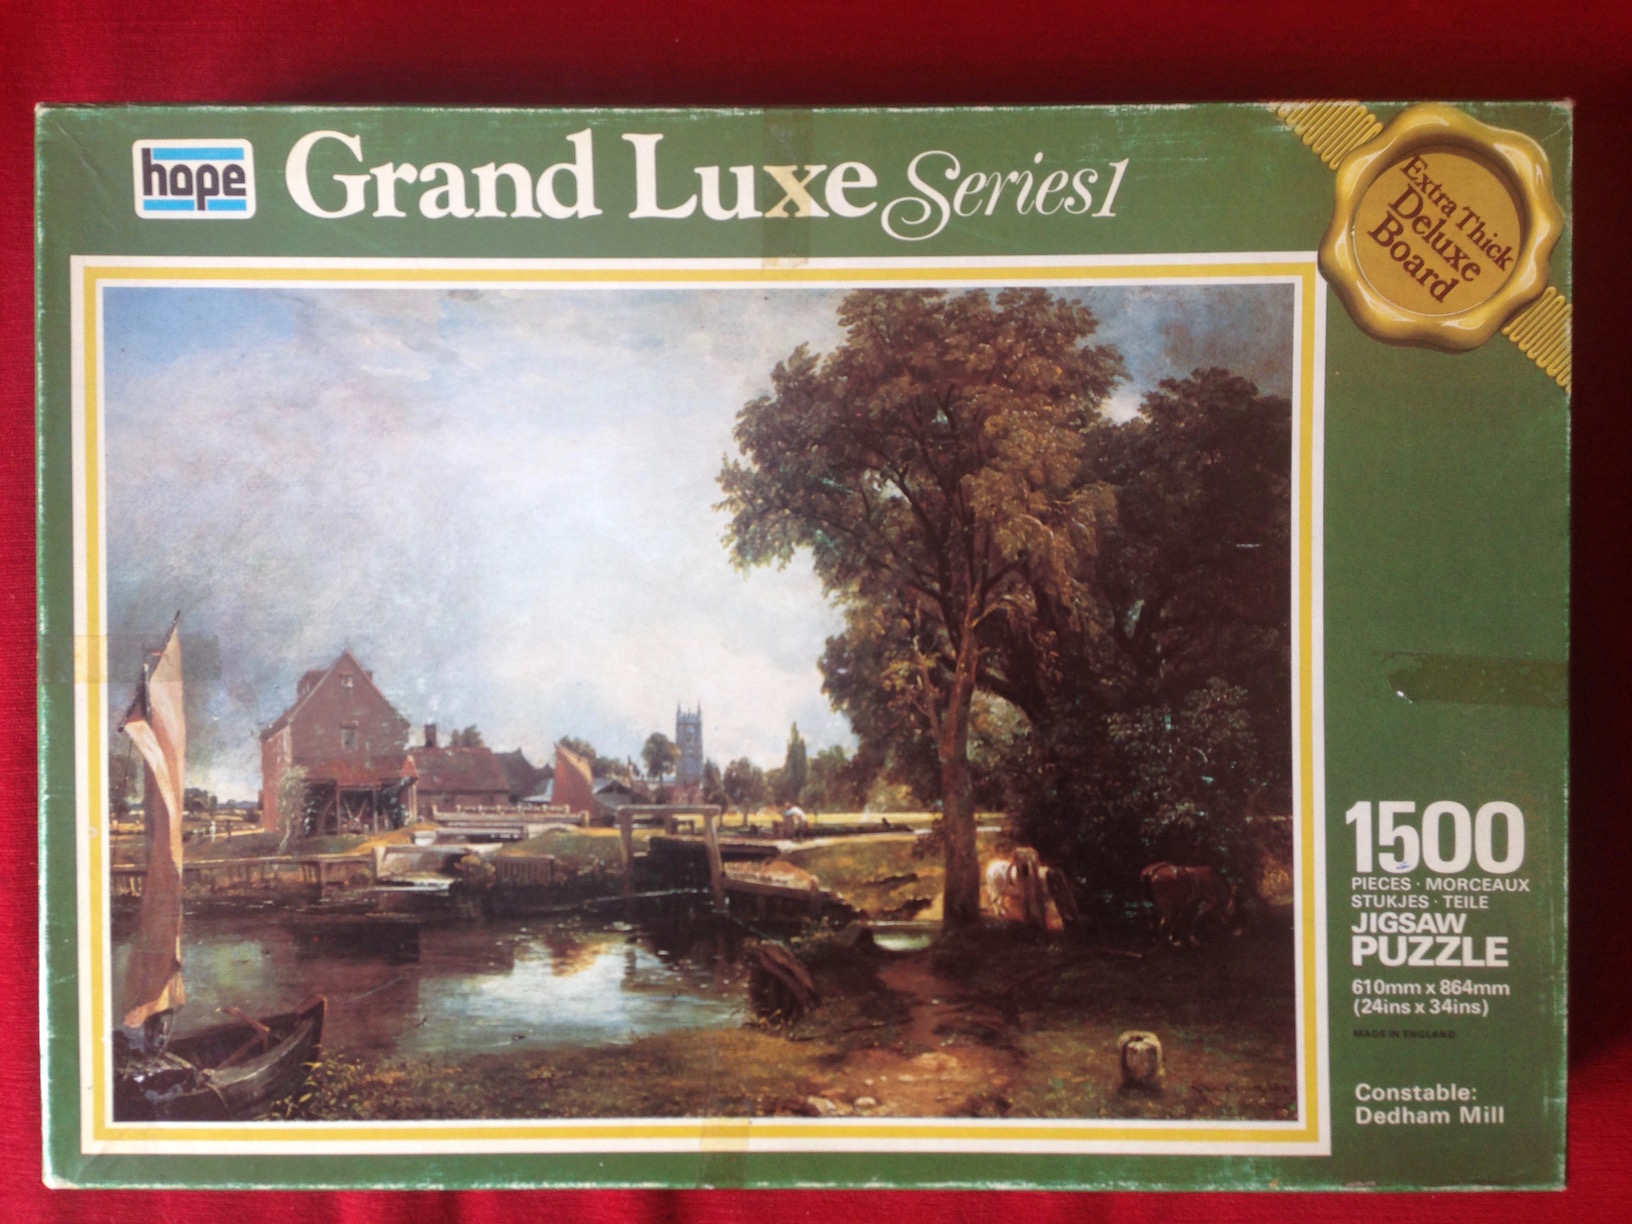 Image of the puzzle 1500, Hope, Dedham Mill, John Constable, Complete, Picture of the box